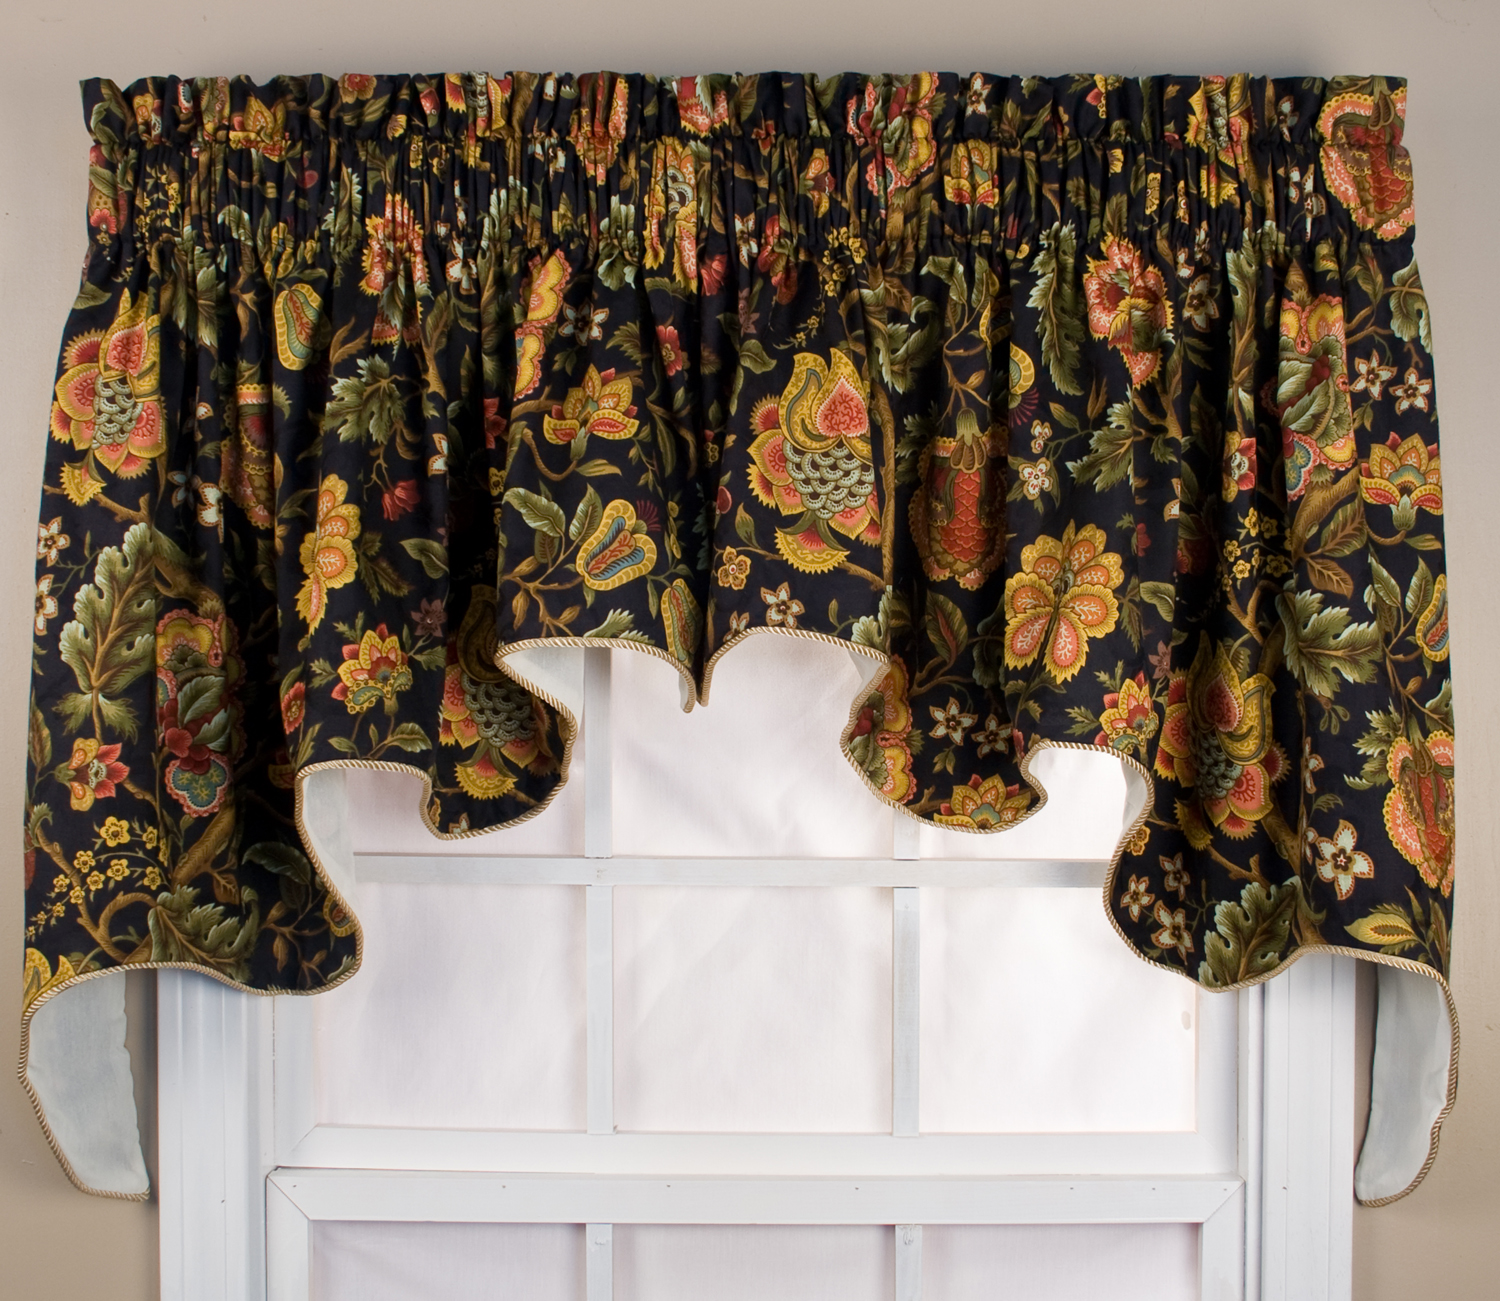 Swag Curtains Solids Patterns Thecurtainshop Com